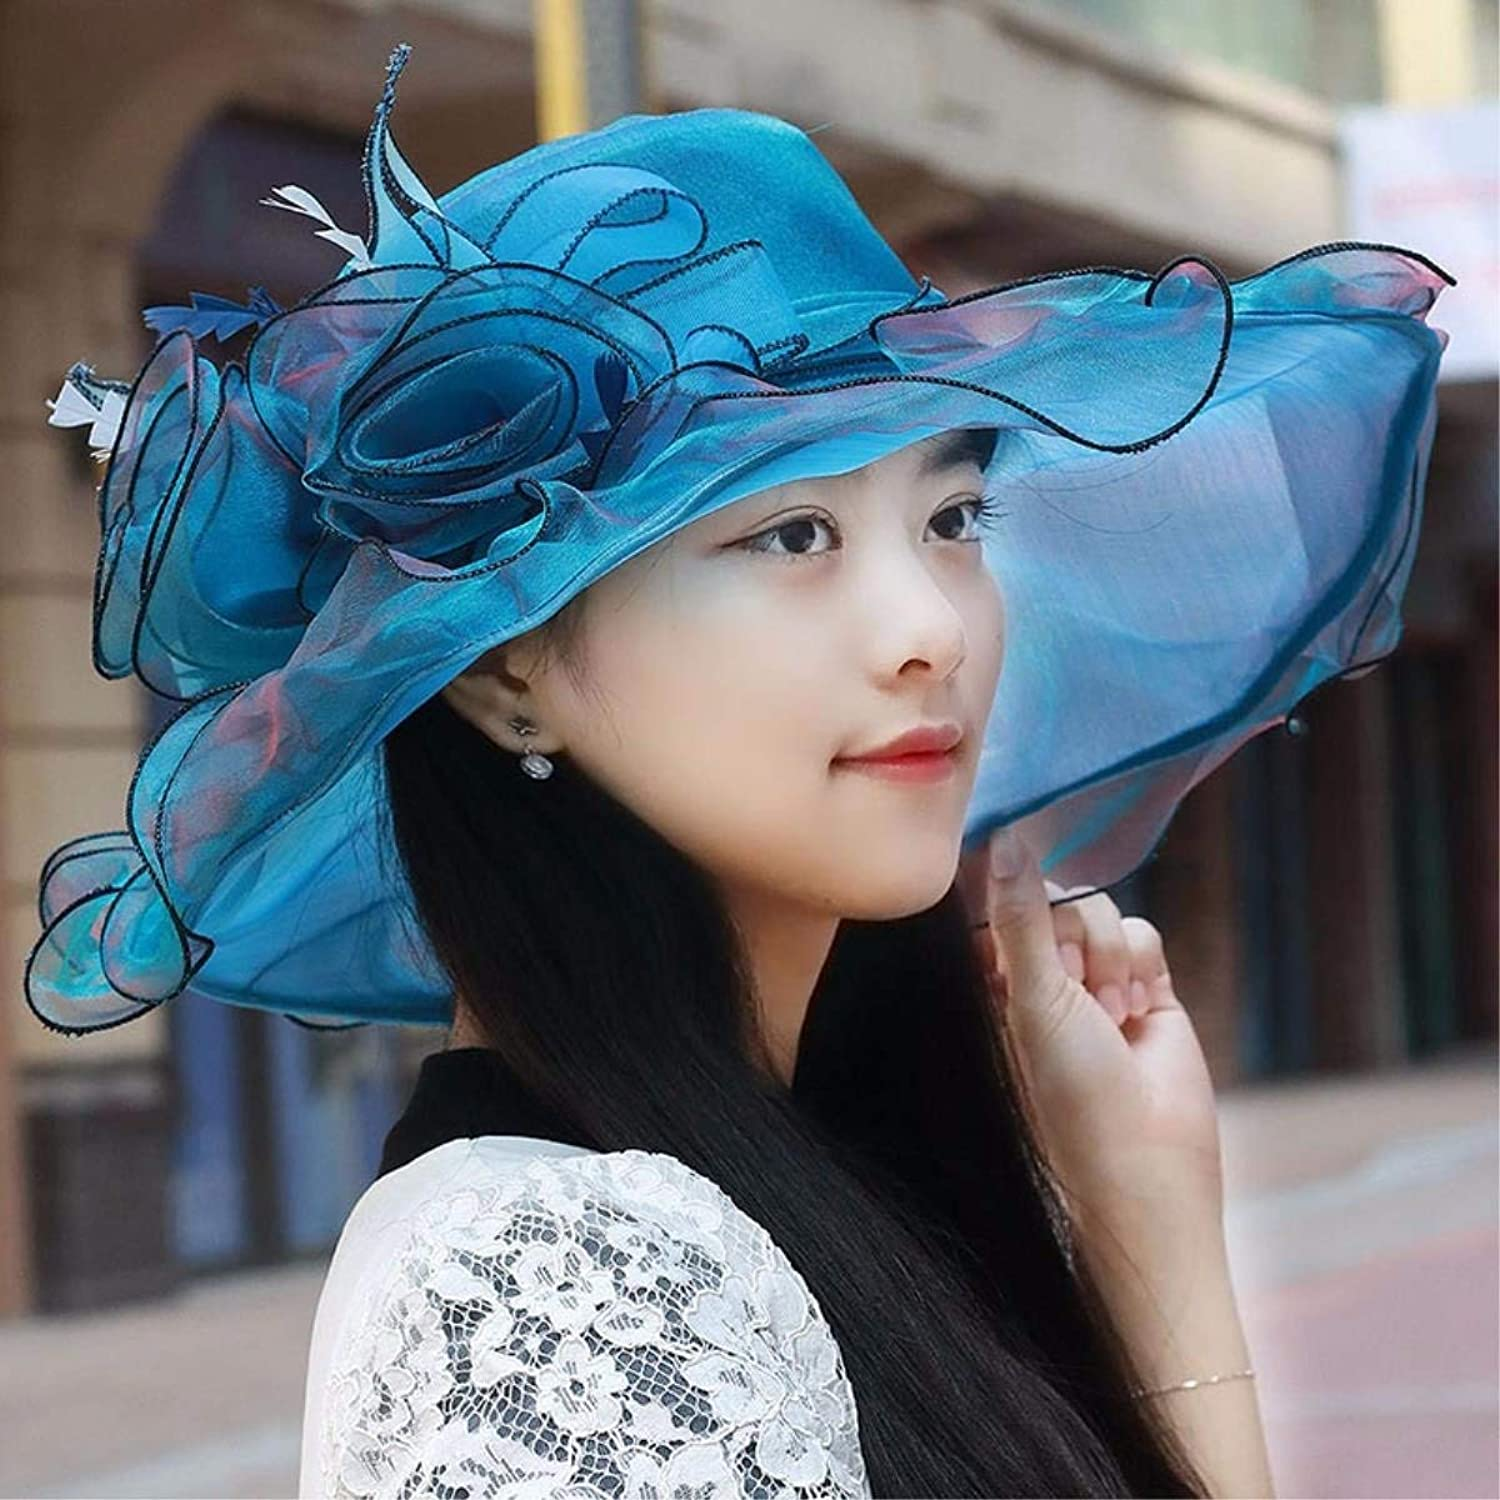 Dianye Hat the girl thin, breathable snow spinning cap gorgeous flowers visor sun hat beach hat sun hat new